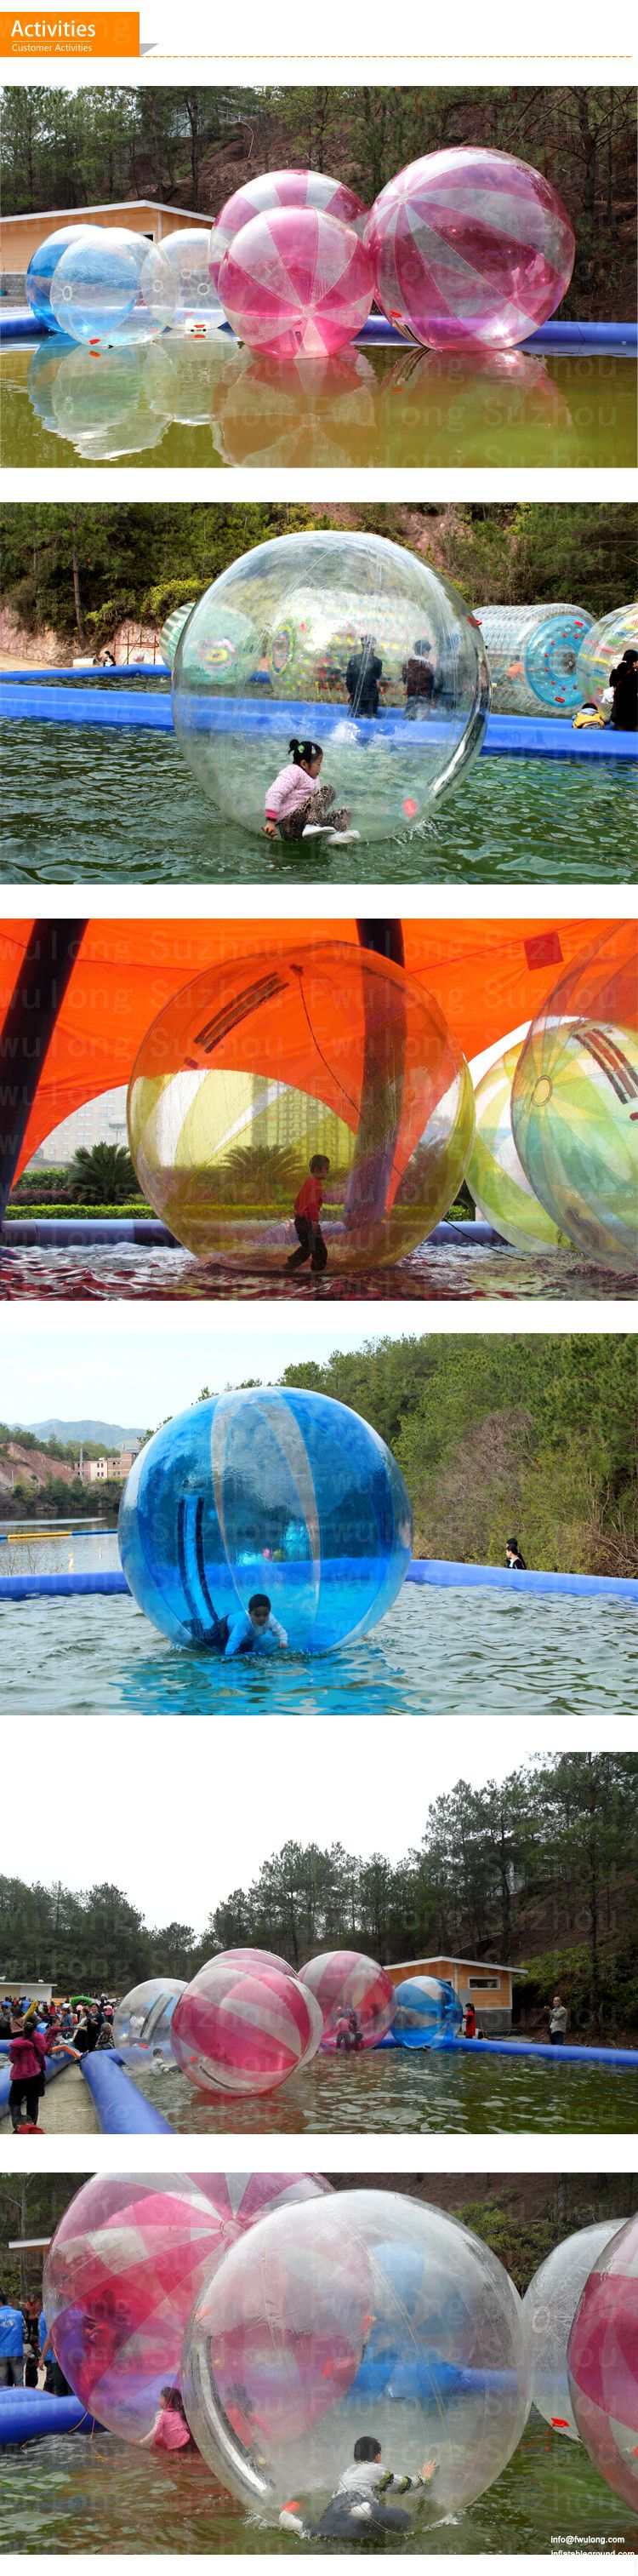 water ball from suzhou fwulong